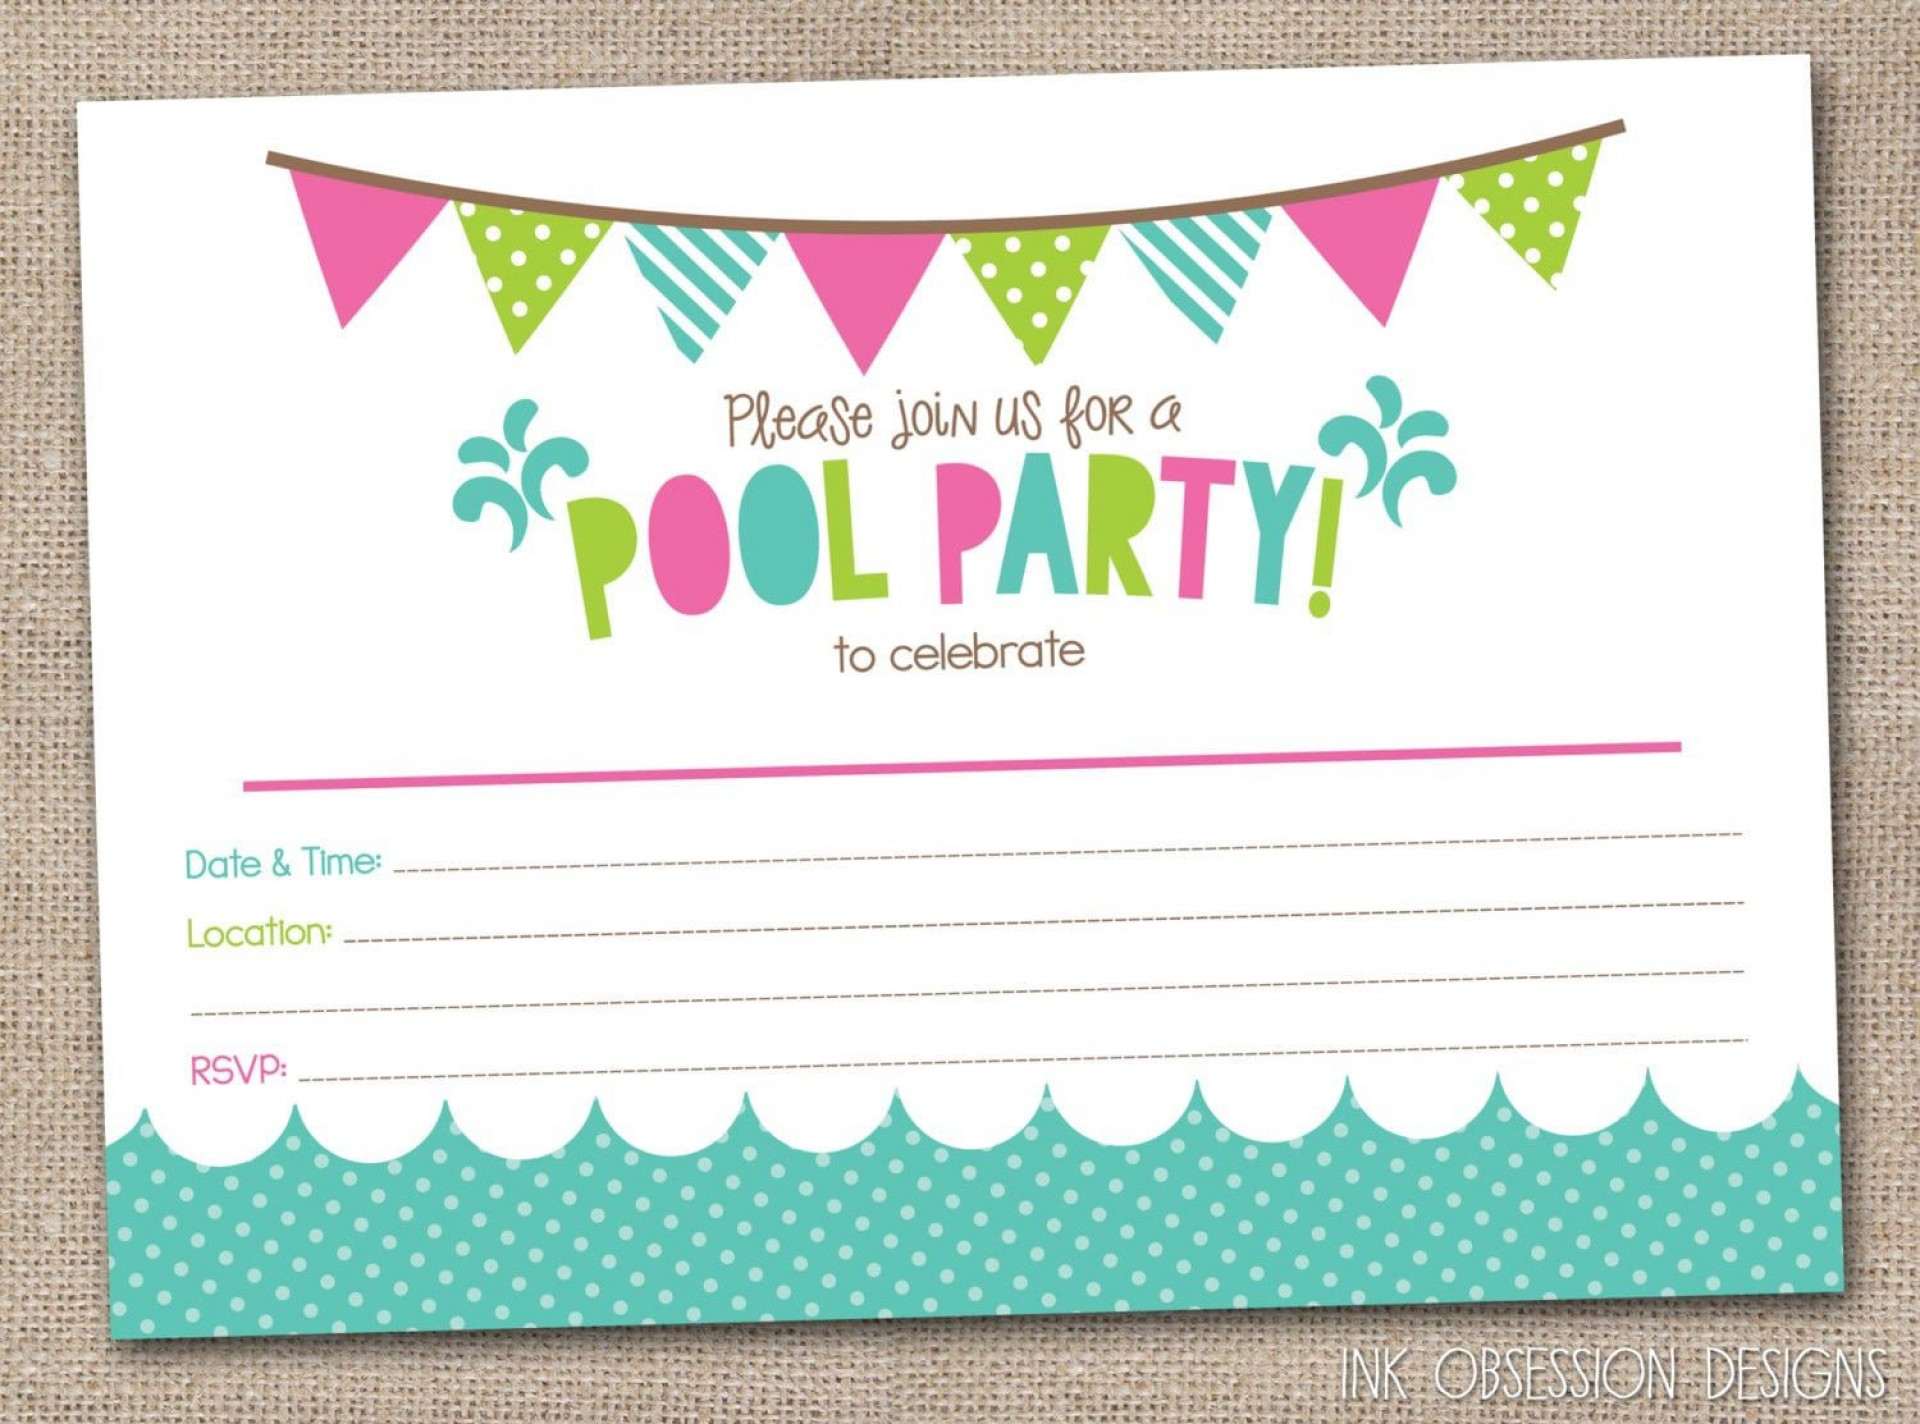 009 Sensational Pool Party Invitation Template Free Example  Downloadable Printable Swimming1920